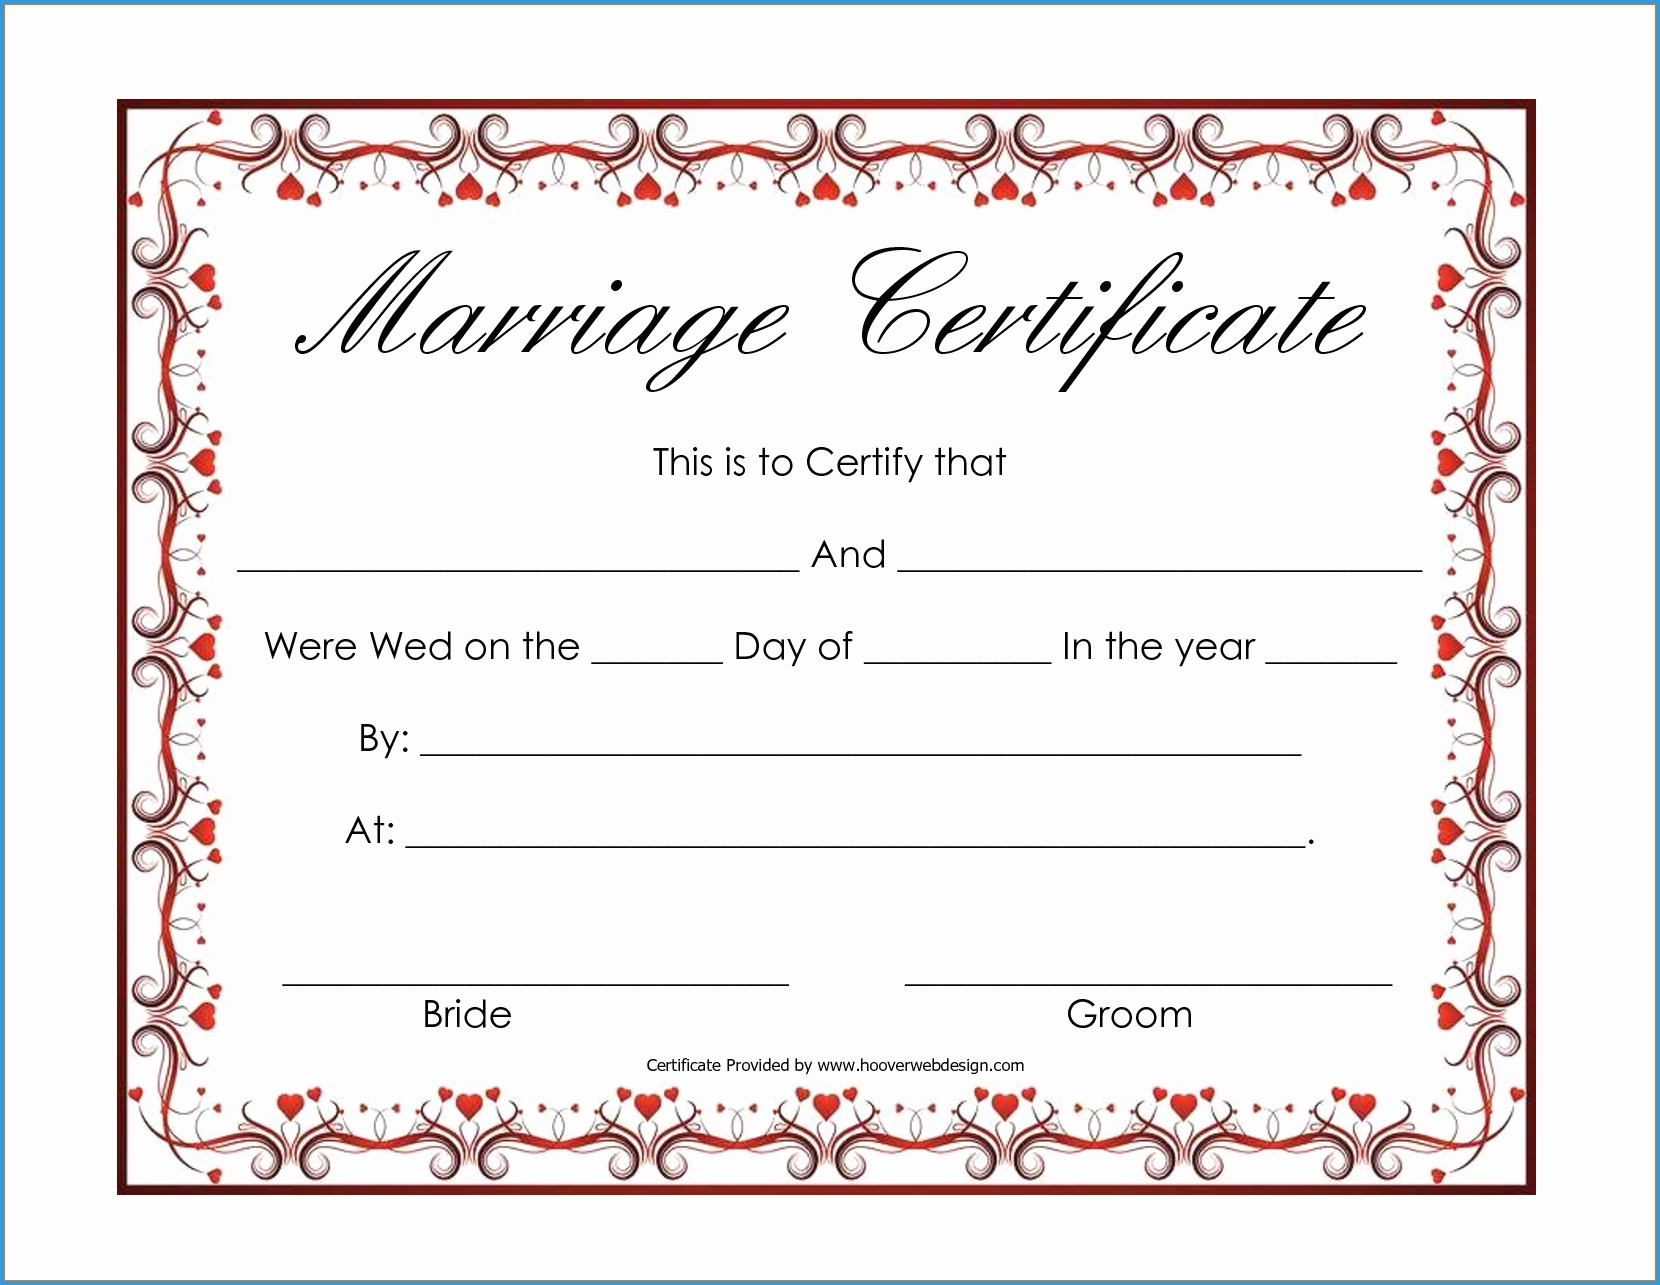 Blank Marriage Certificate Template  Sansurabionetassociats Within Blank Marriage Certificate Template